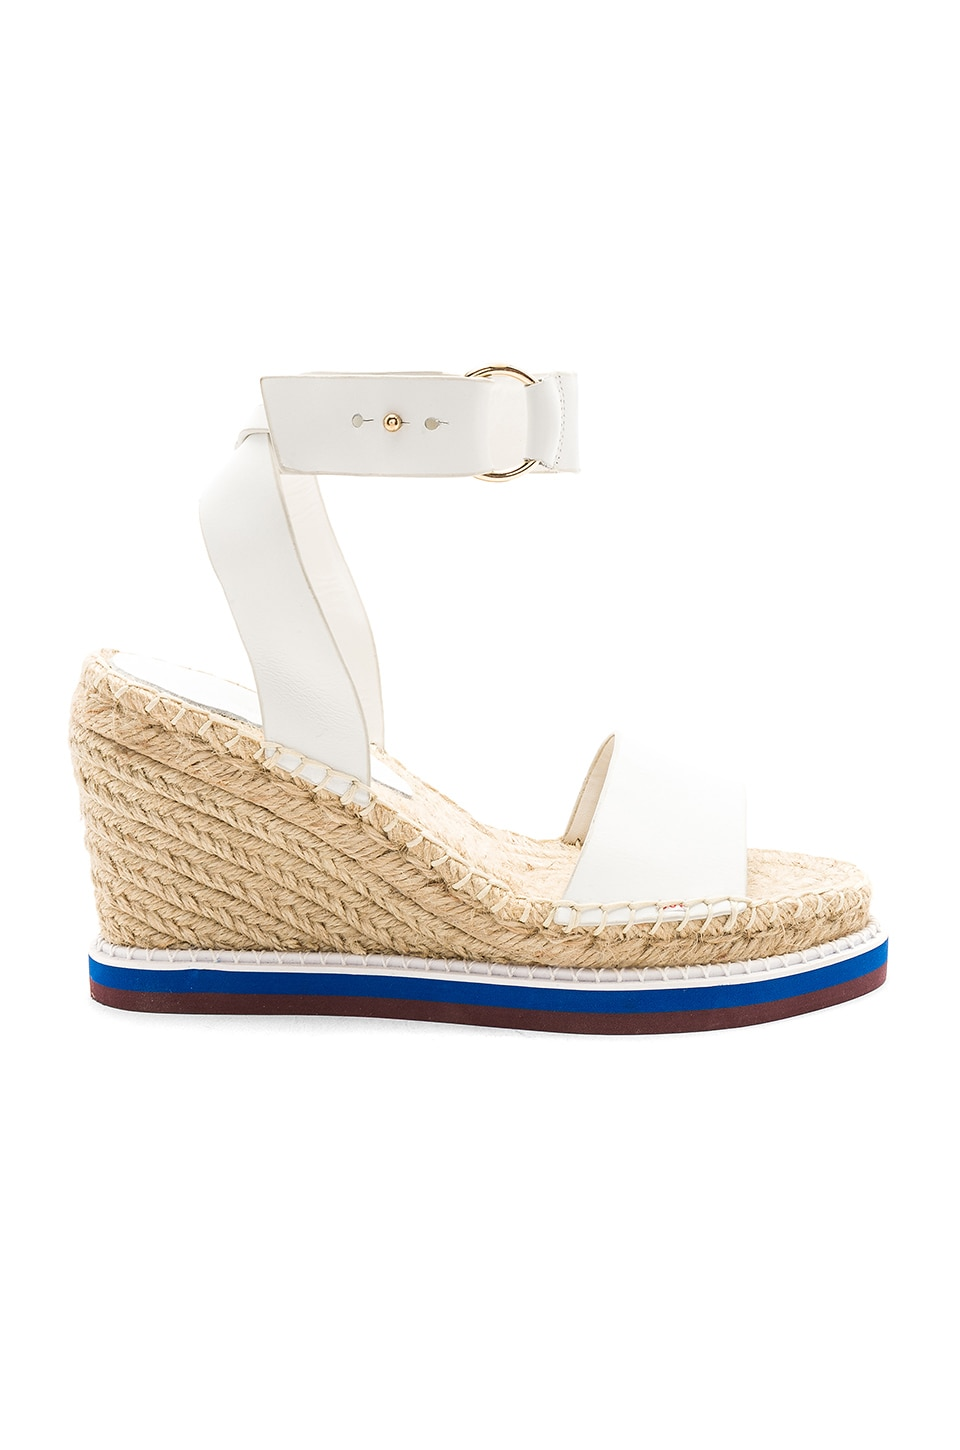 Tony Bianco Emelia Wedge in White Carpetto